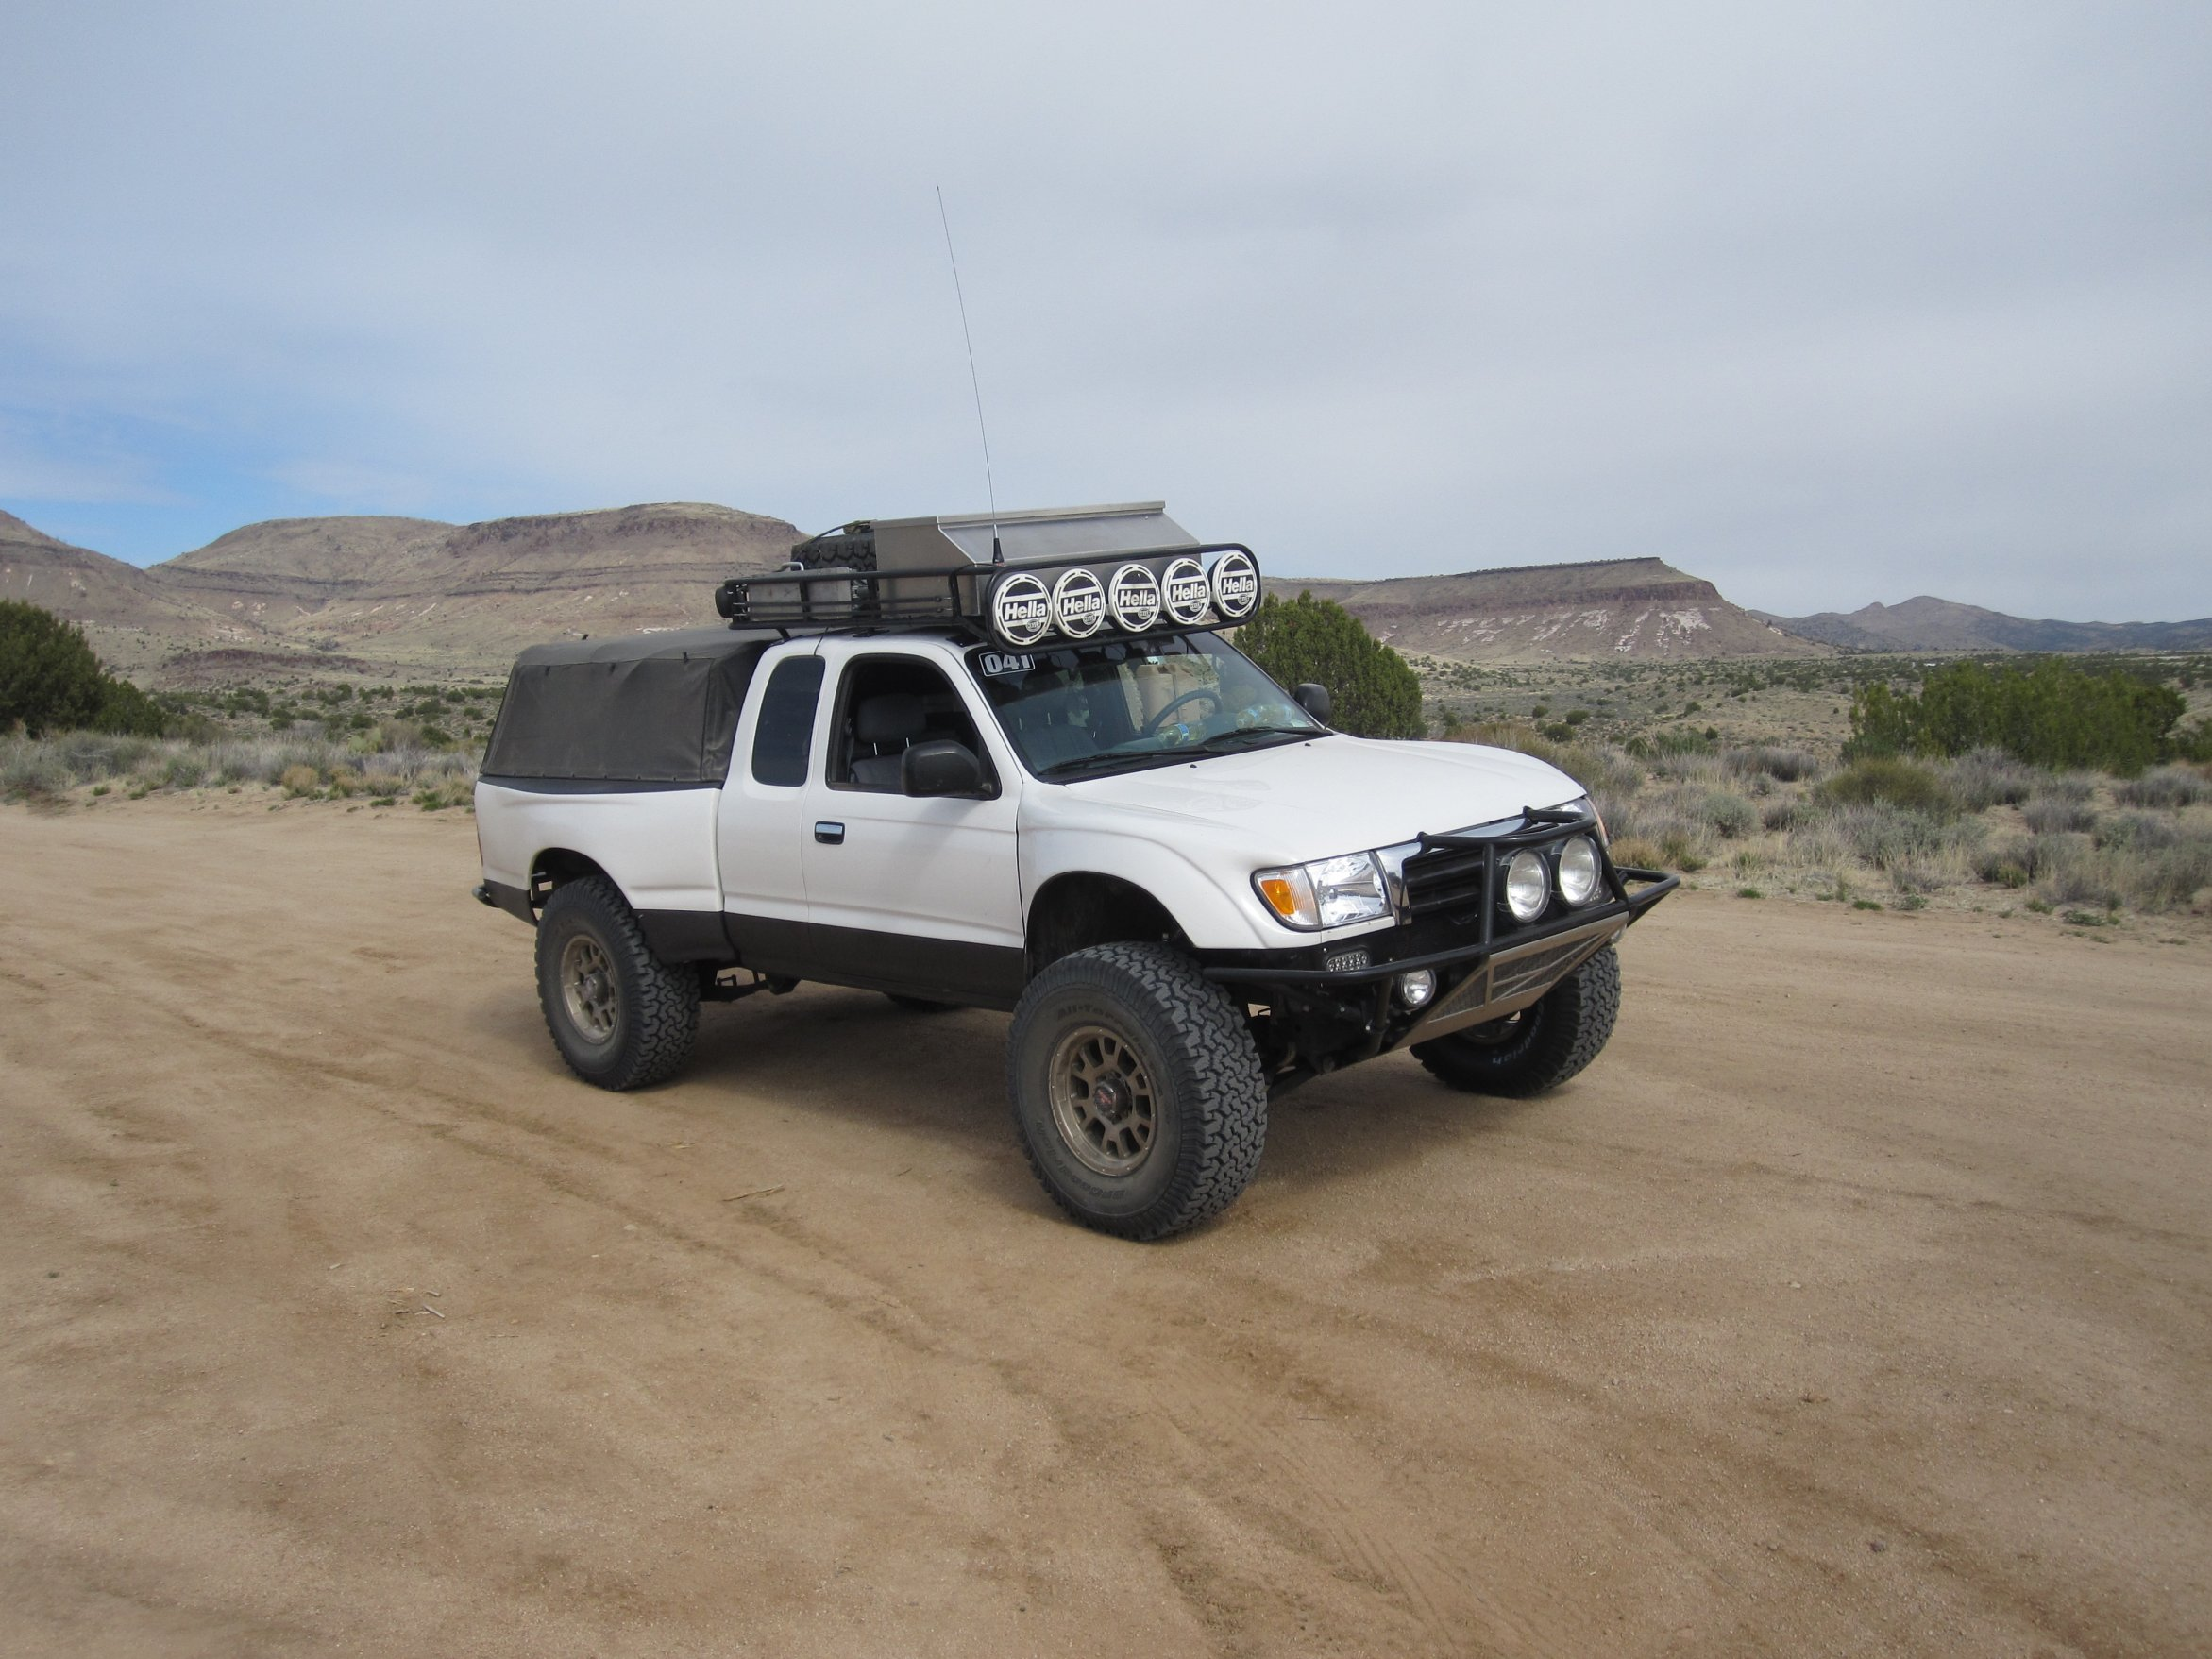 95 2004 Custom Tacoma Roof Rack Socal Expedition Portal